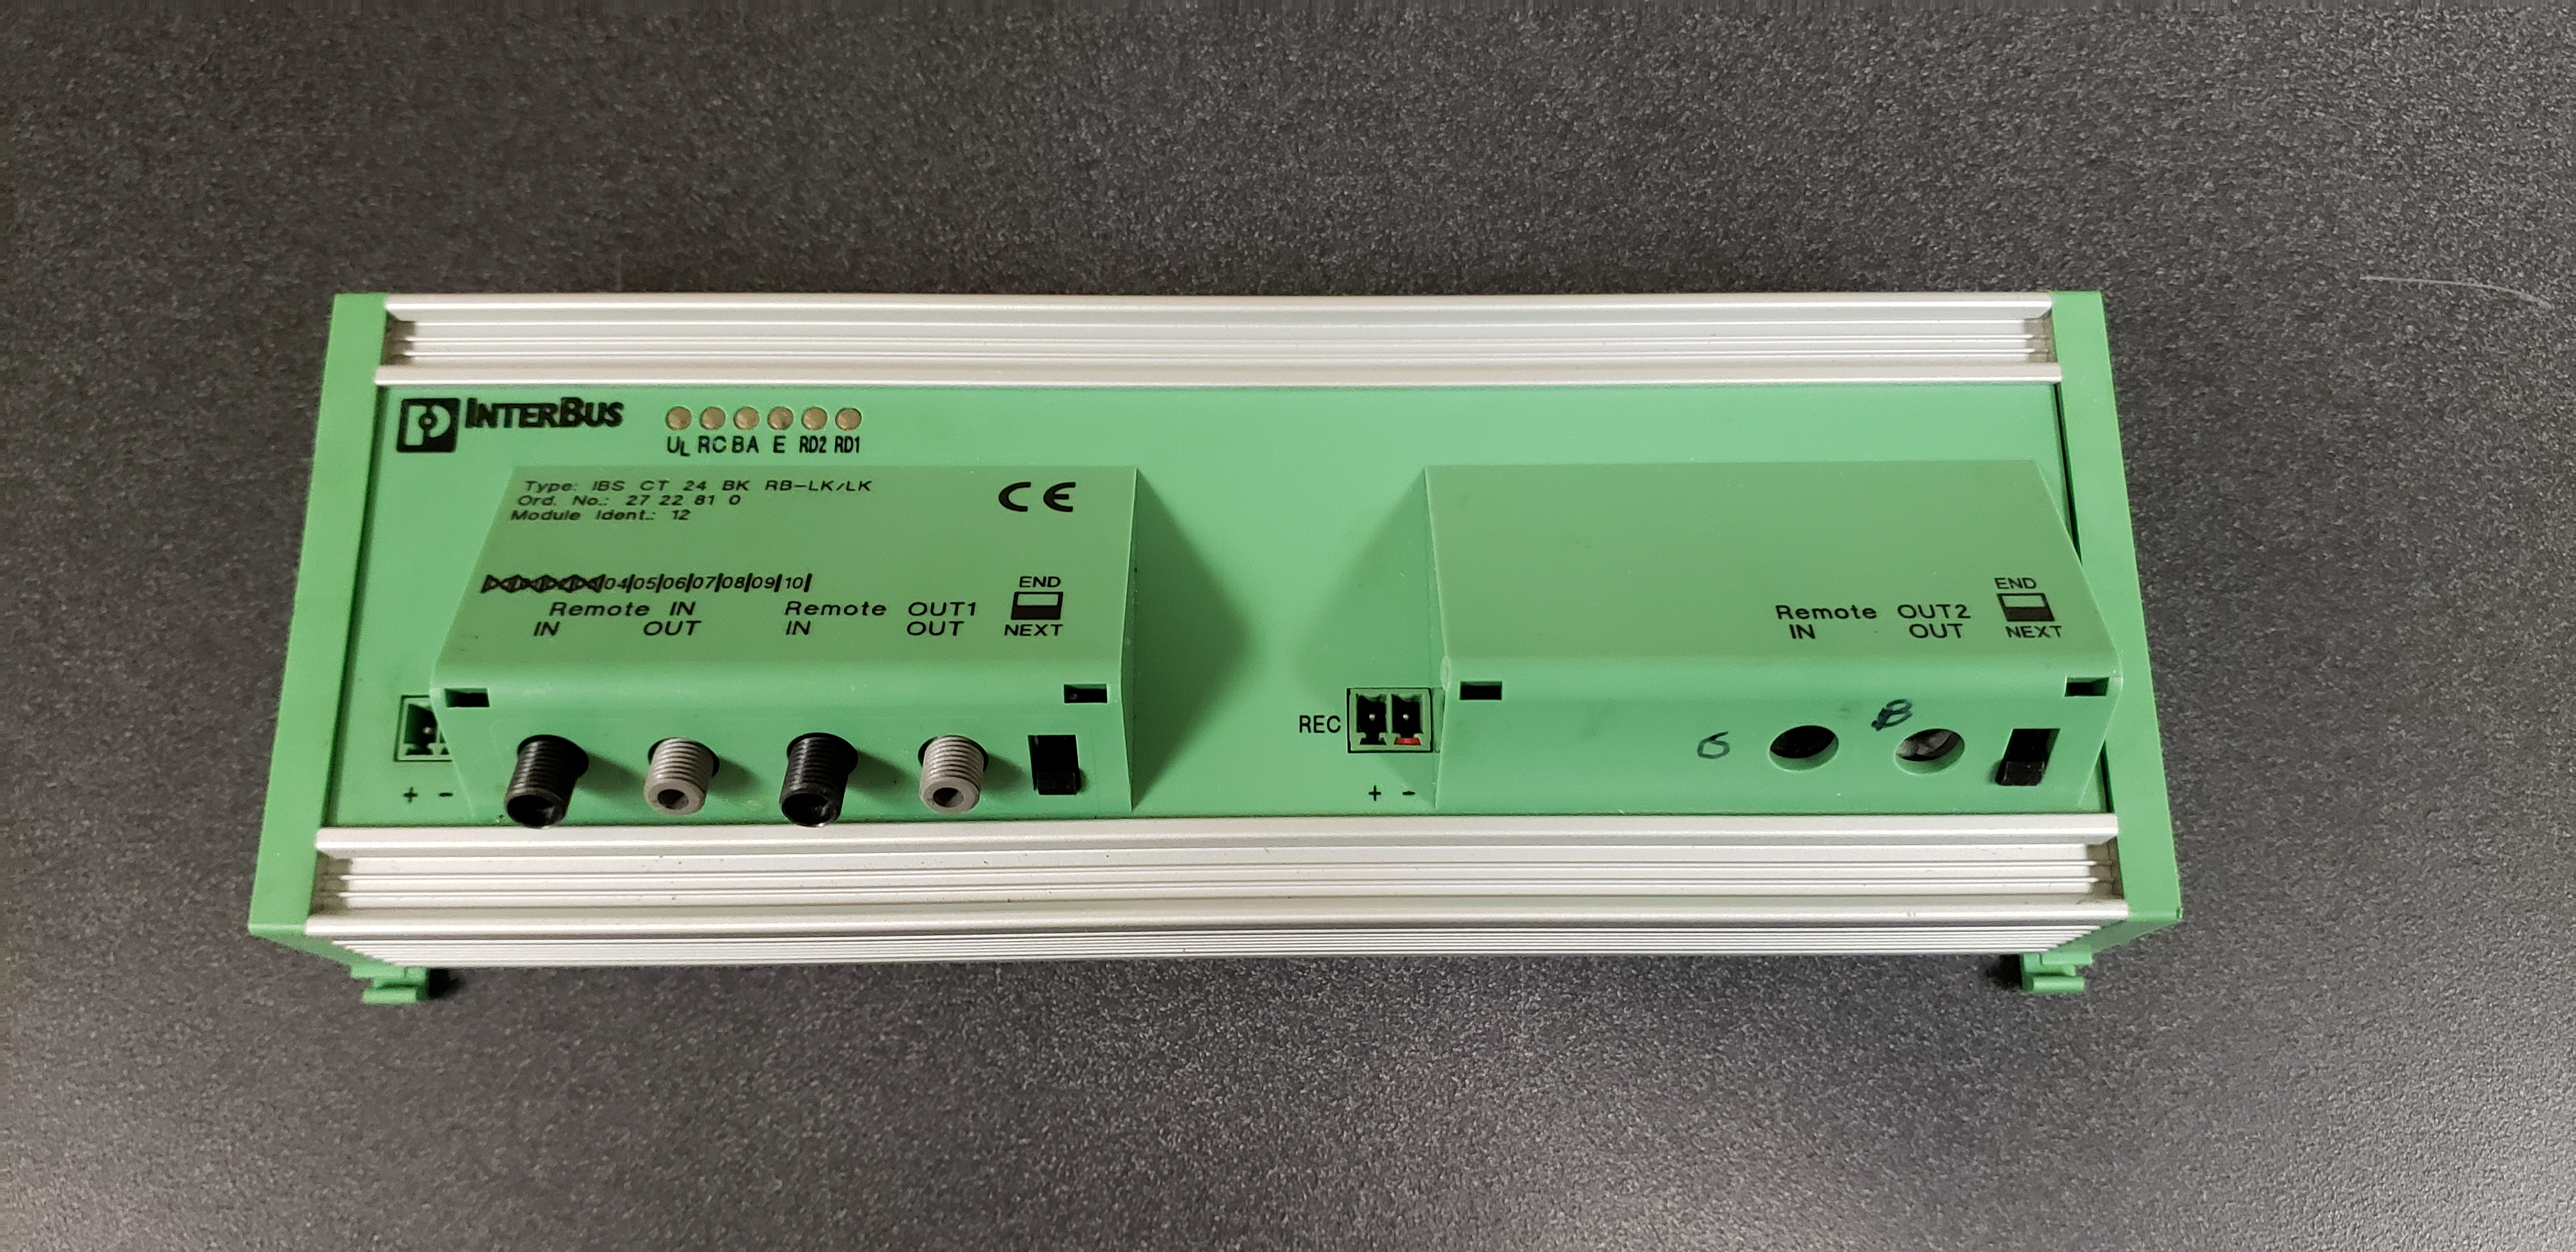 Phoenix Contact Interbus IBS-CT-24-BK-RB-LK/LK Module Model 27-2